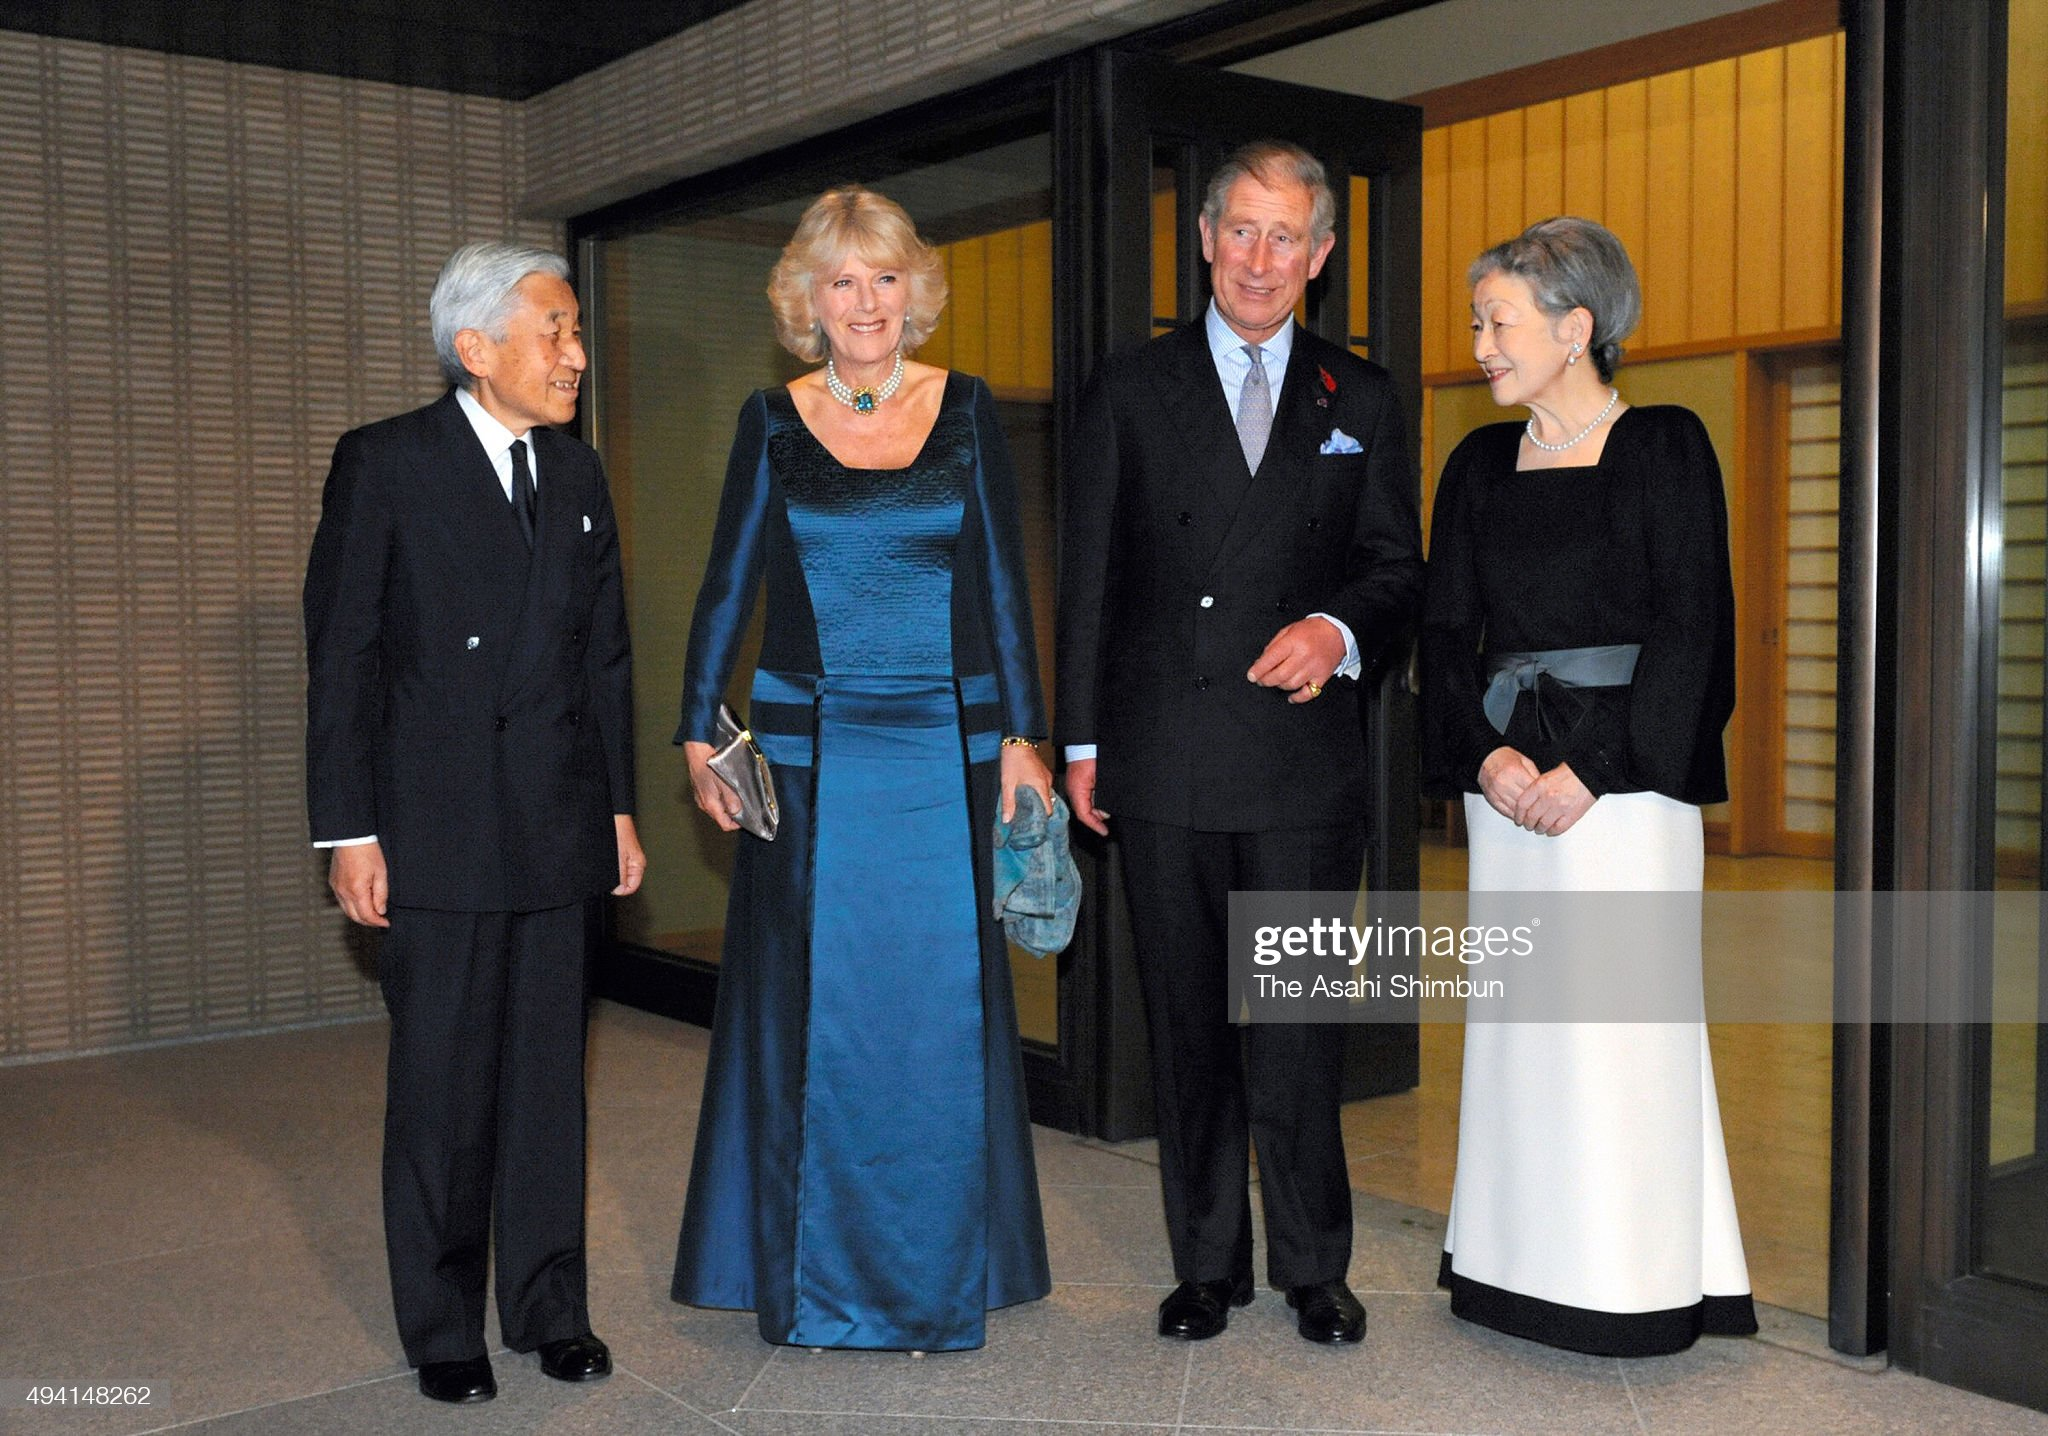 Prince Charles And Duchess Of Cornwall Visit Japan - Day 2 : News Photo